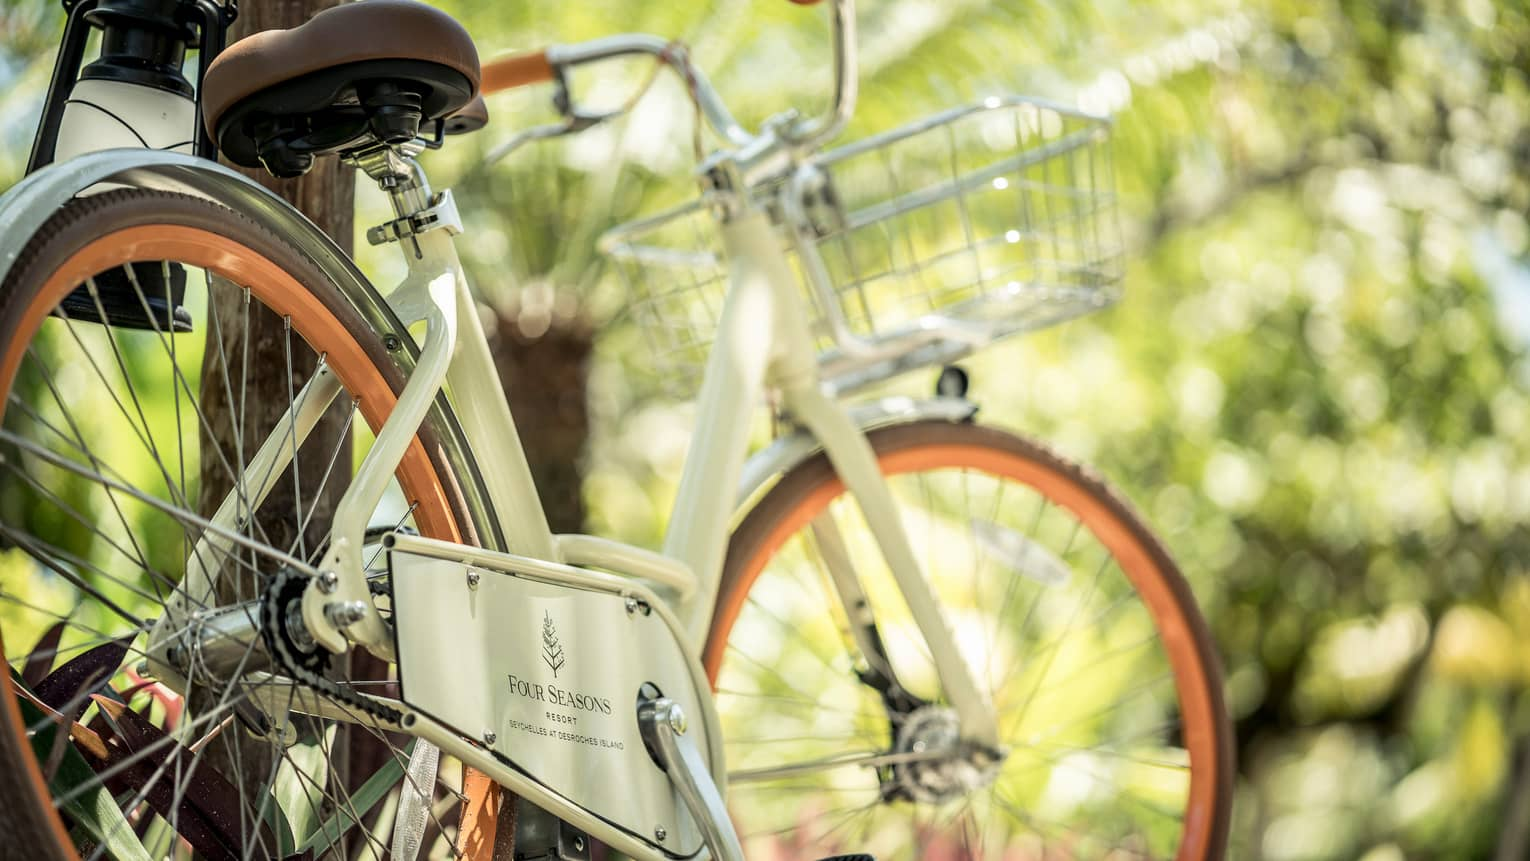 White vintage style bicycle with Four Seasons Hotels logo